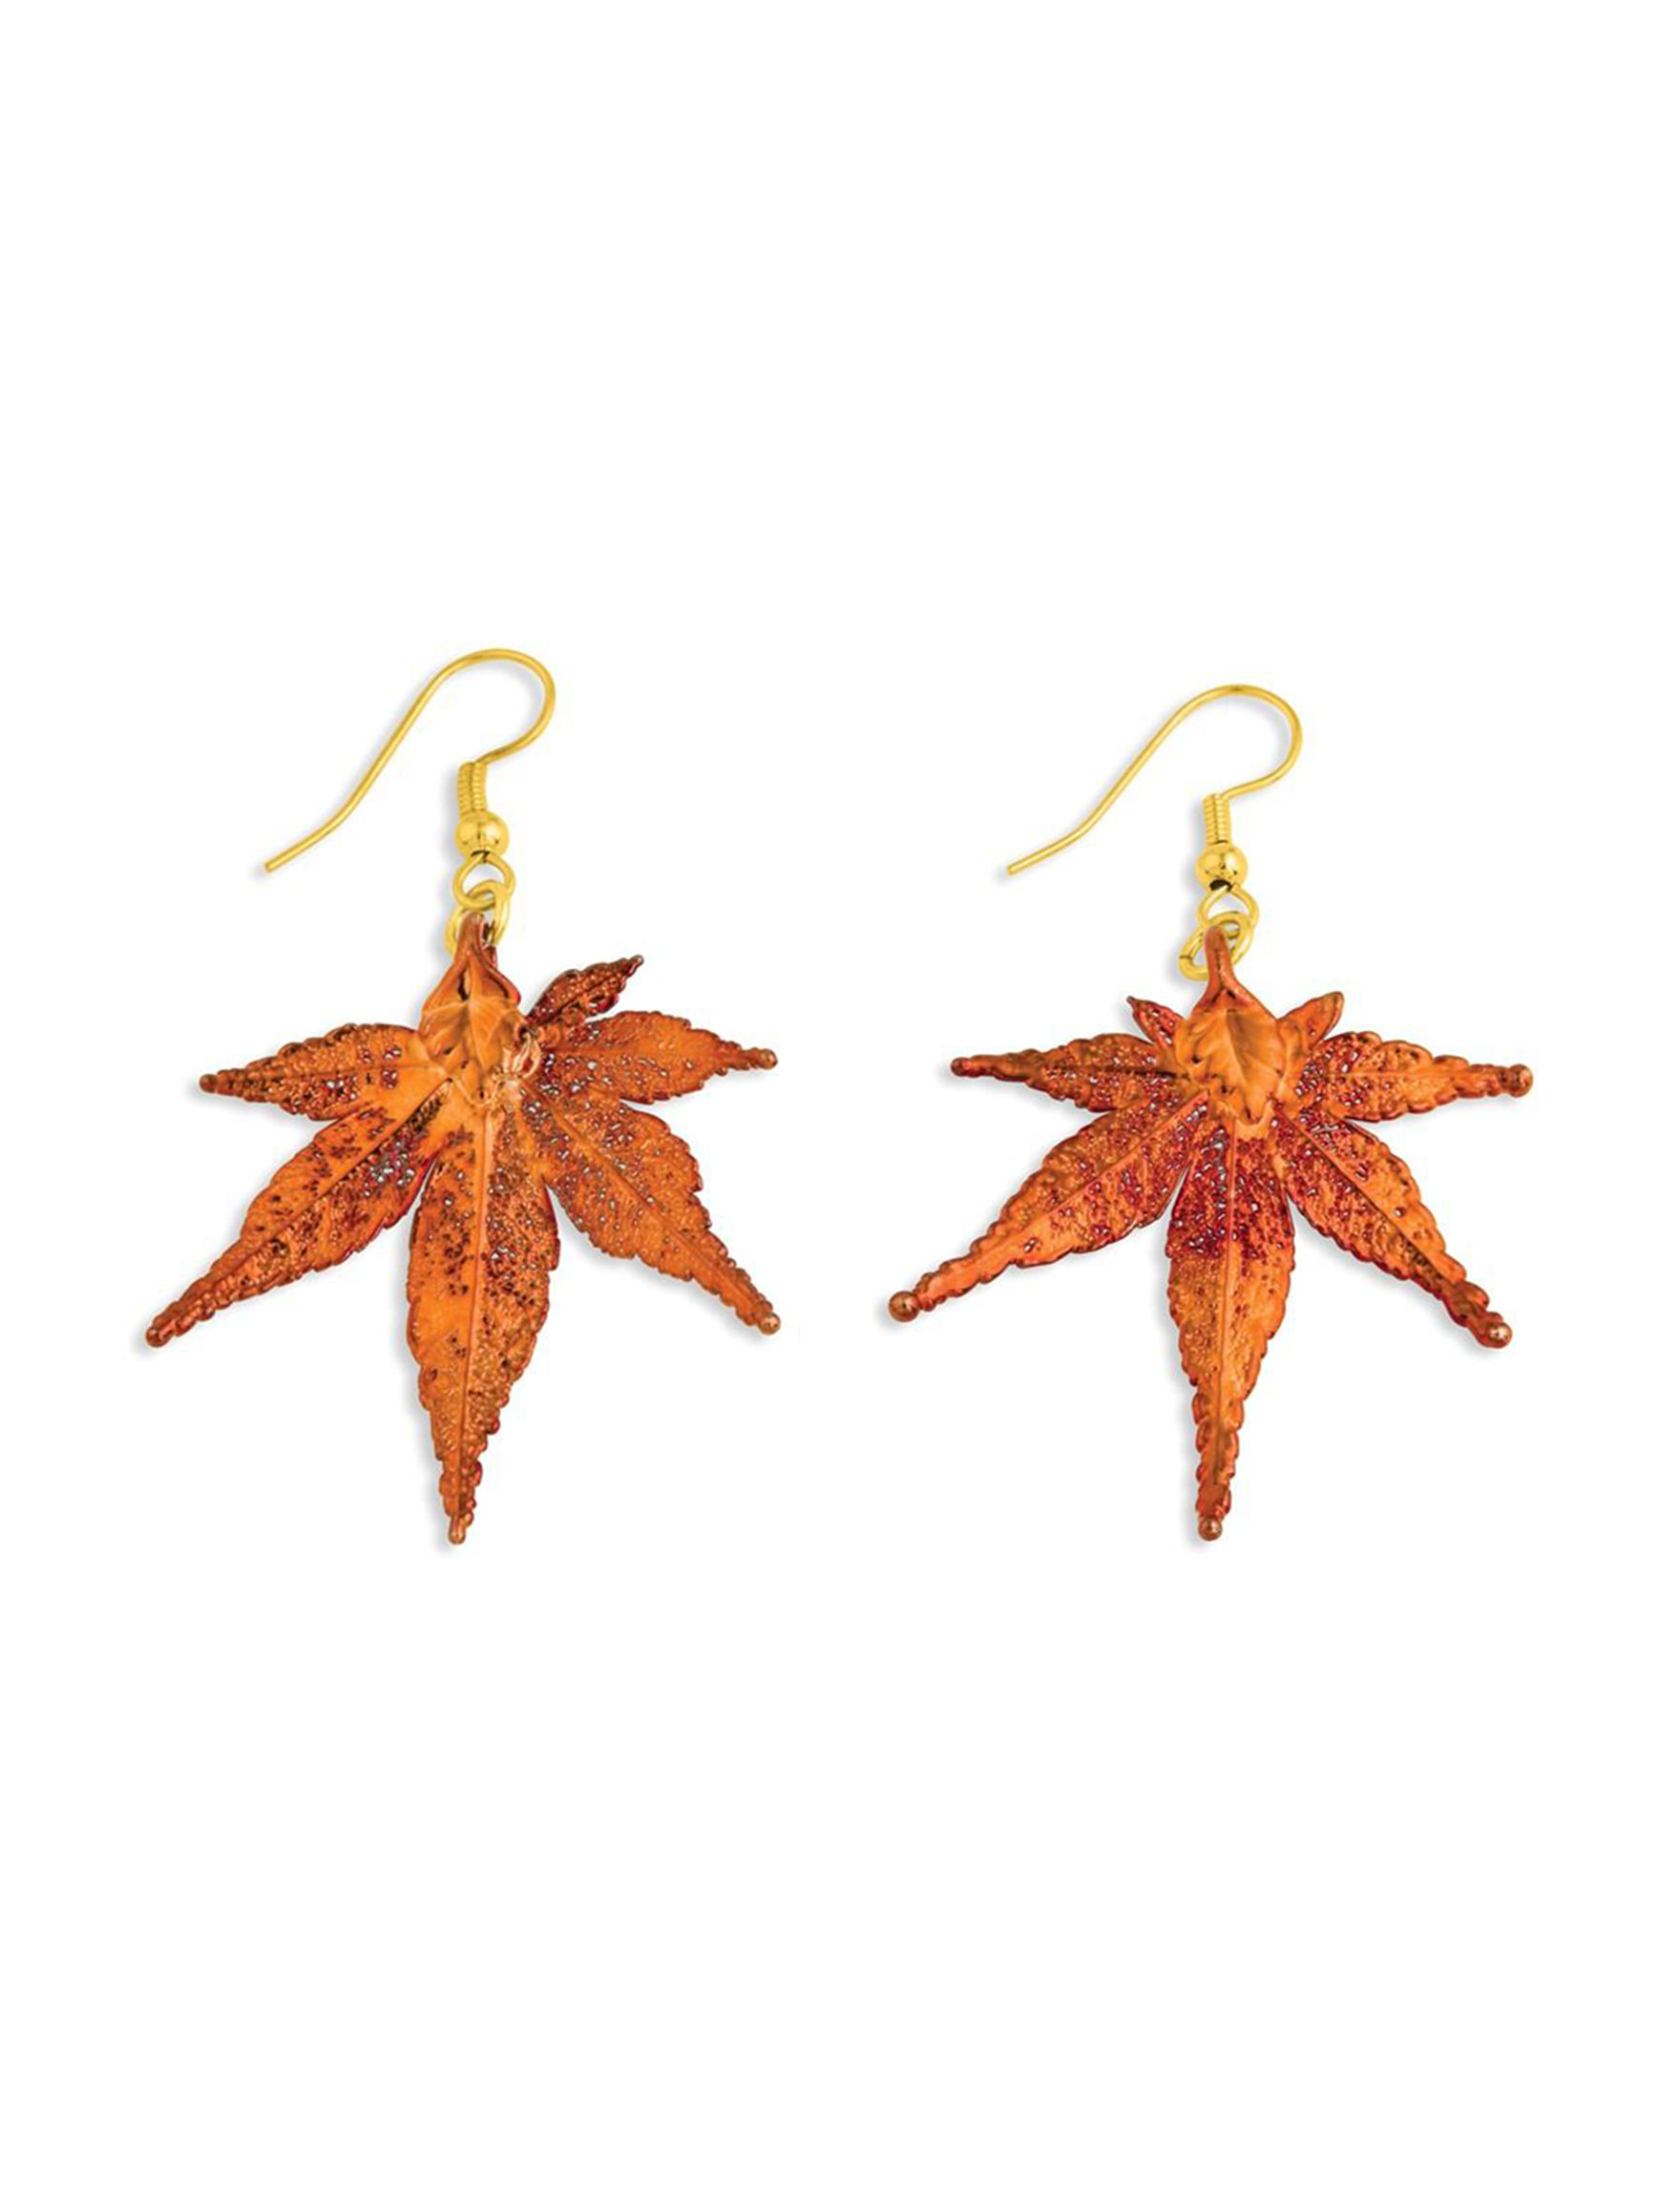 Affordable Expressions Copper Drops Earrings Fine Jewelry